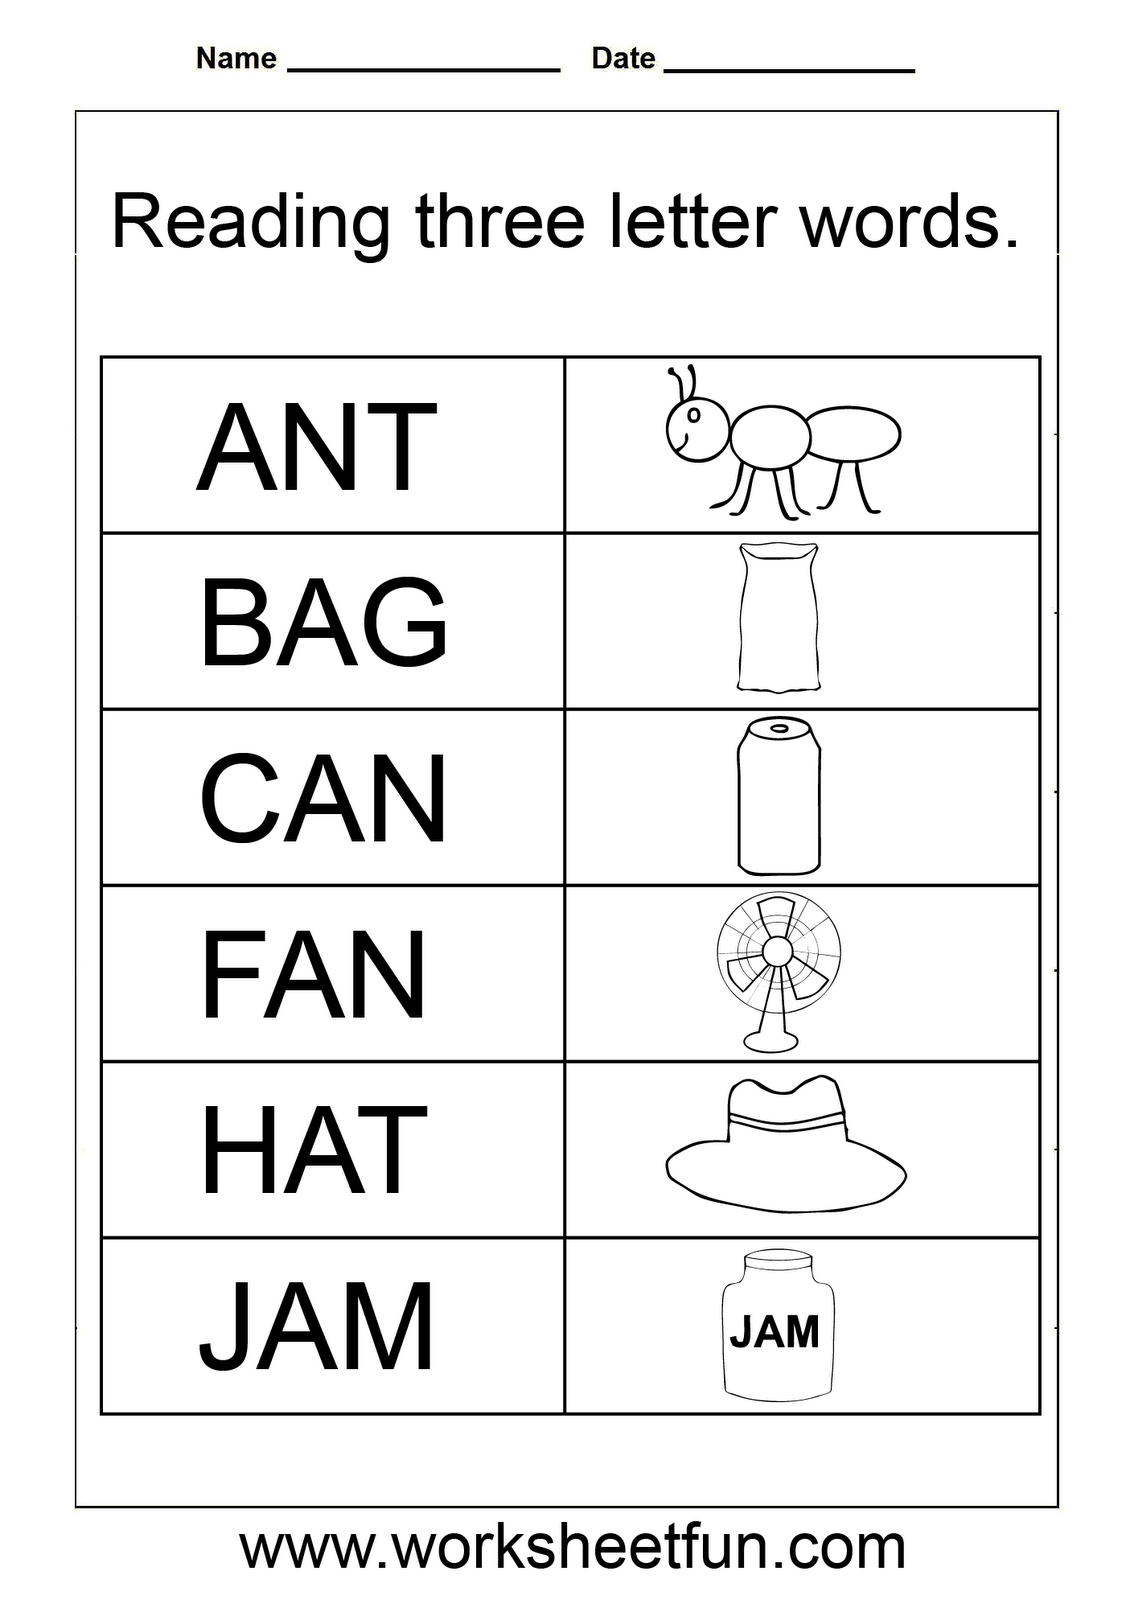 3 Letter Words Worksheets For Kindergarten | Spelling for Tracing 3 Letter Words Worksheets